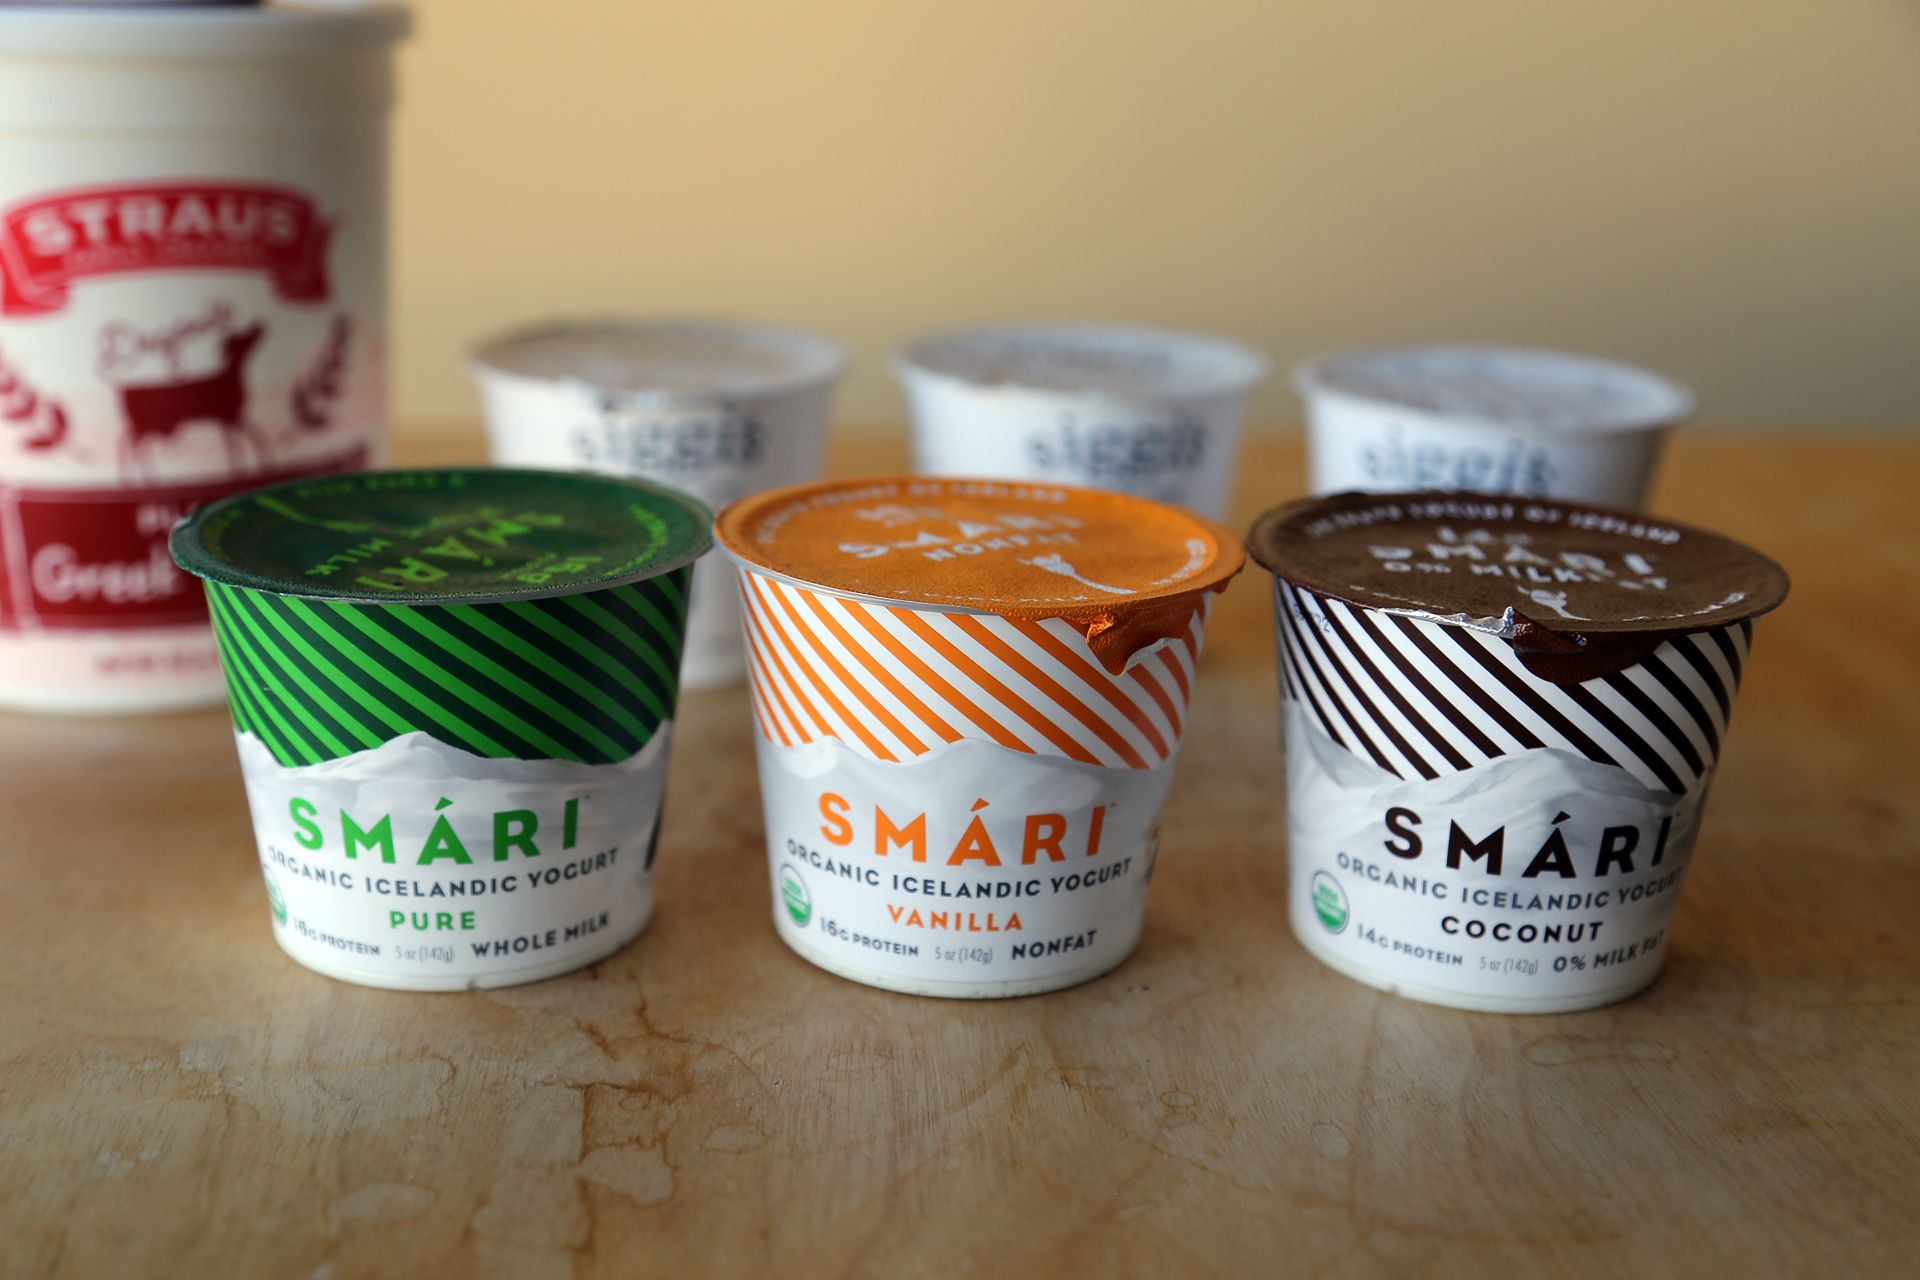 Smári Icelandic Yogurt:  Pure, Vanilla and Coconut